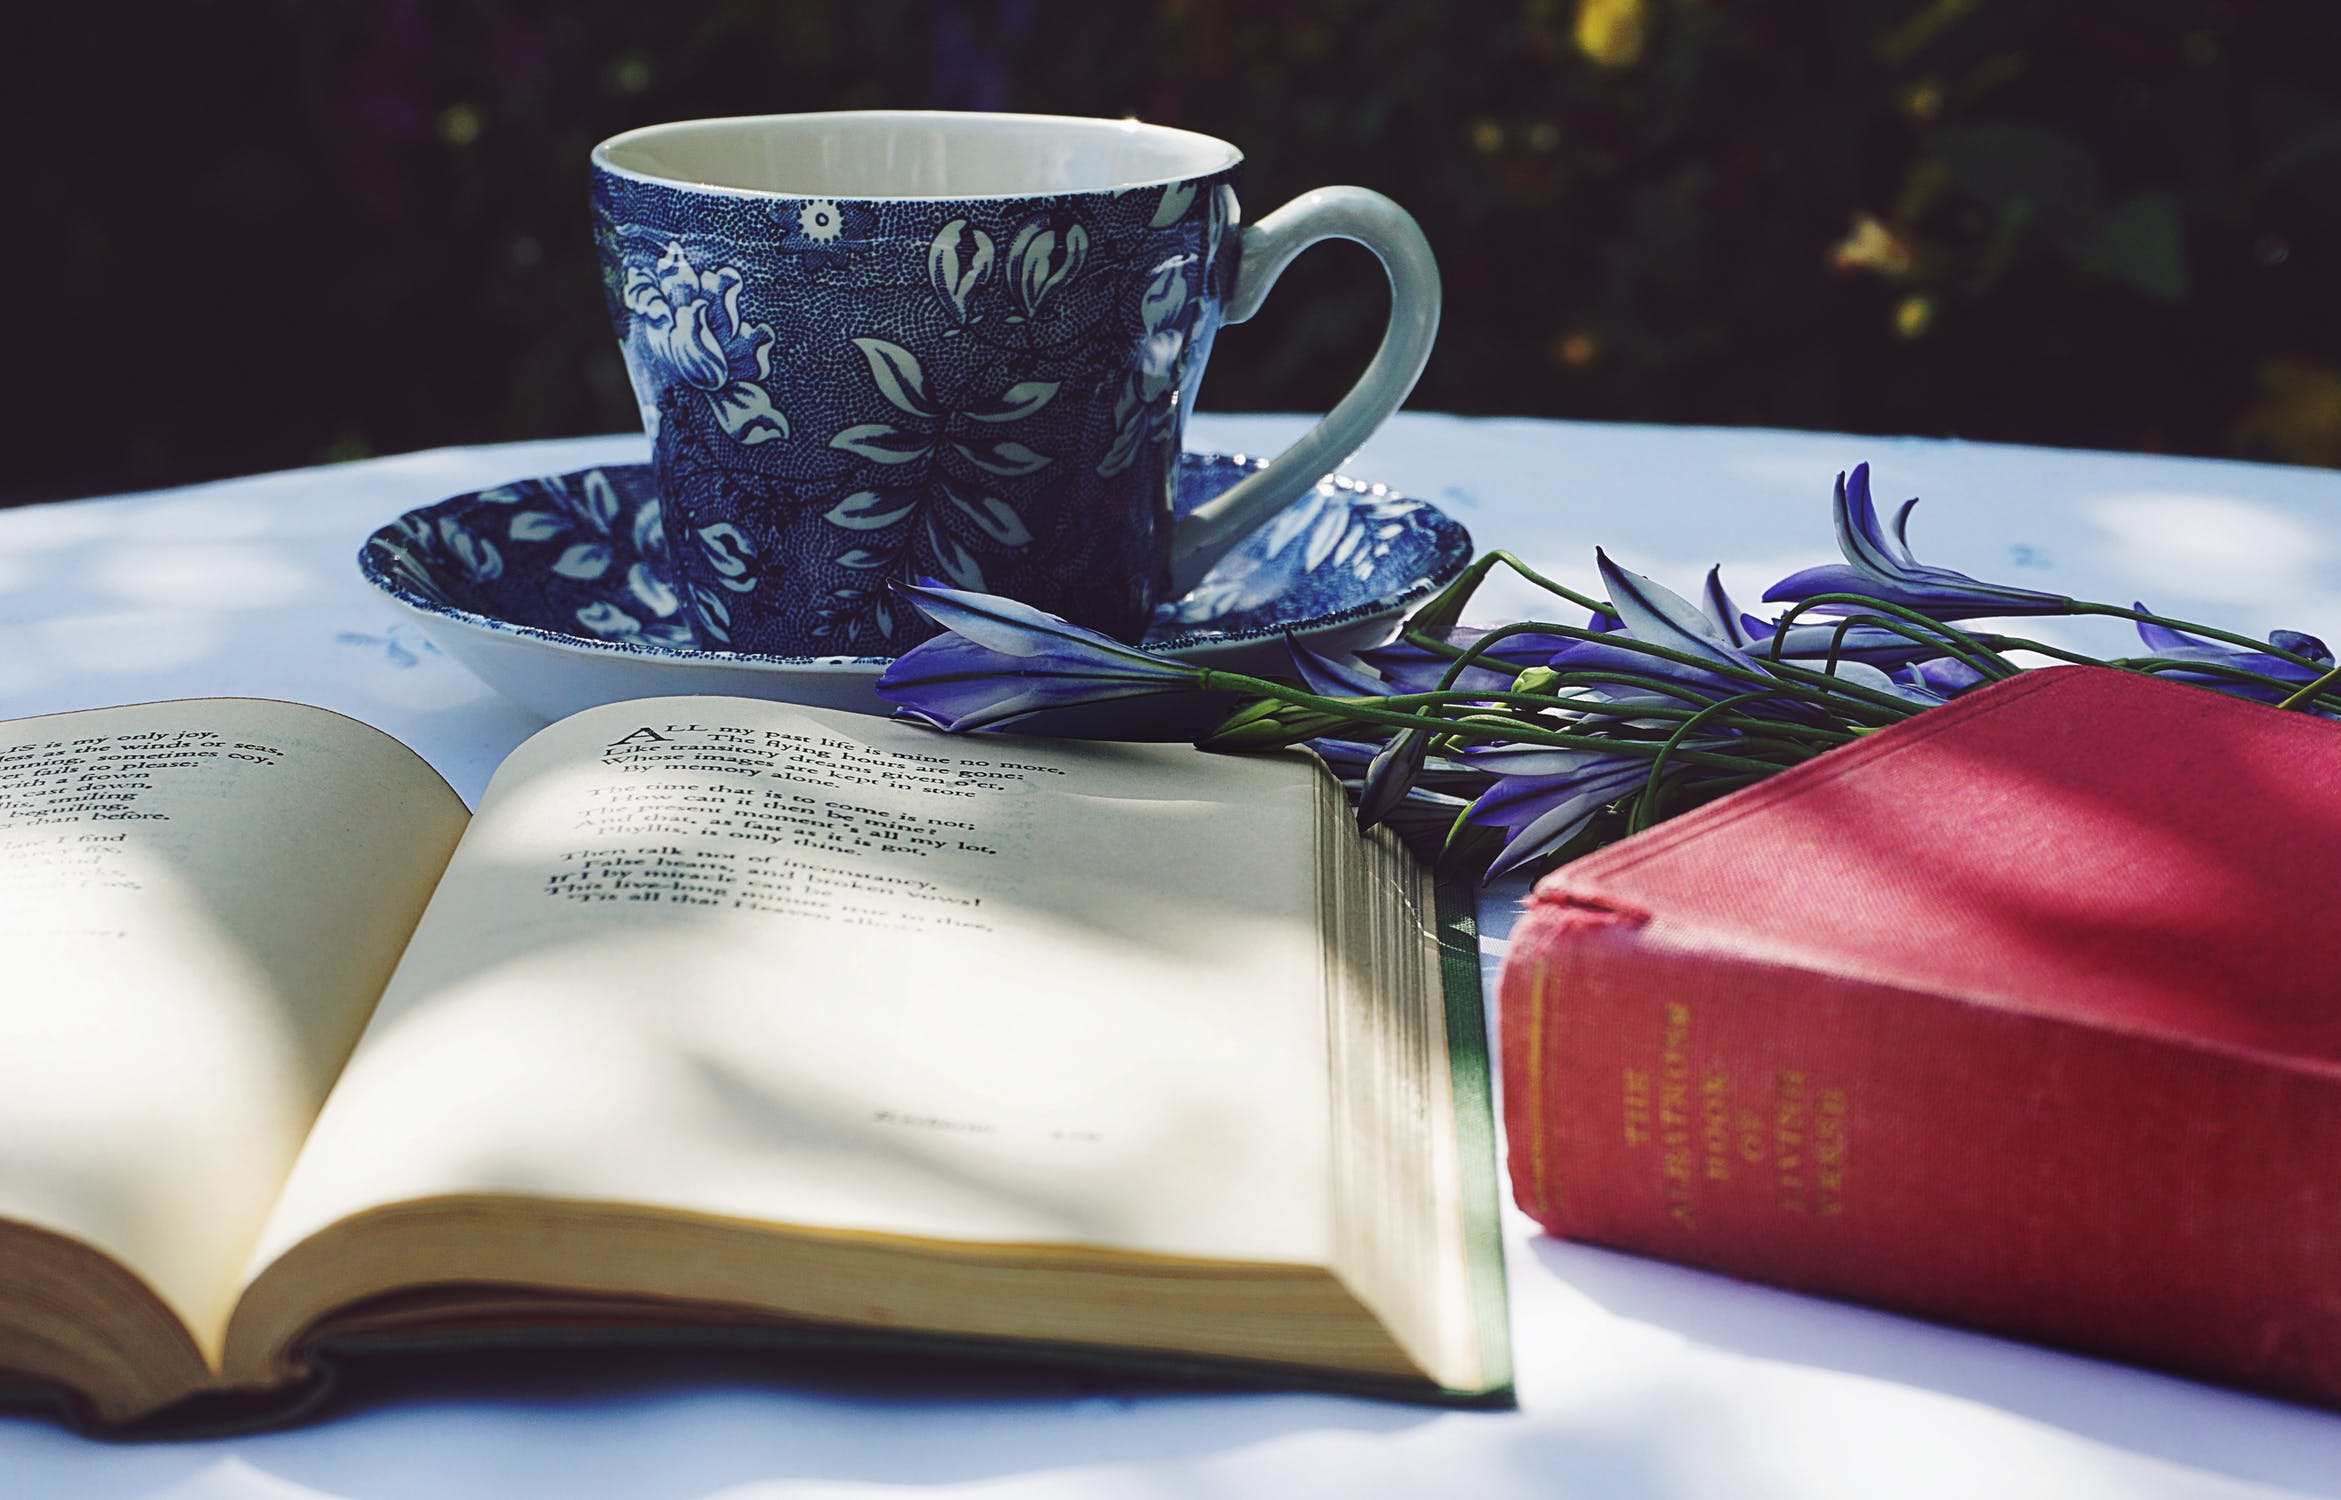 Blue teacup, flowers, and poetry books